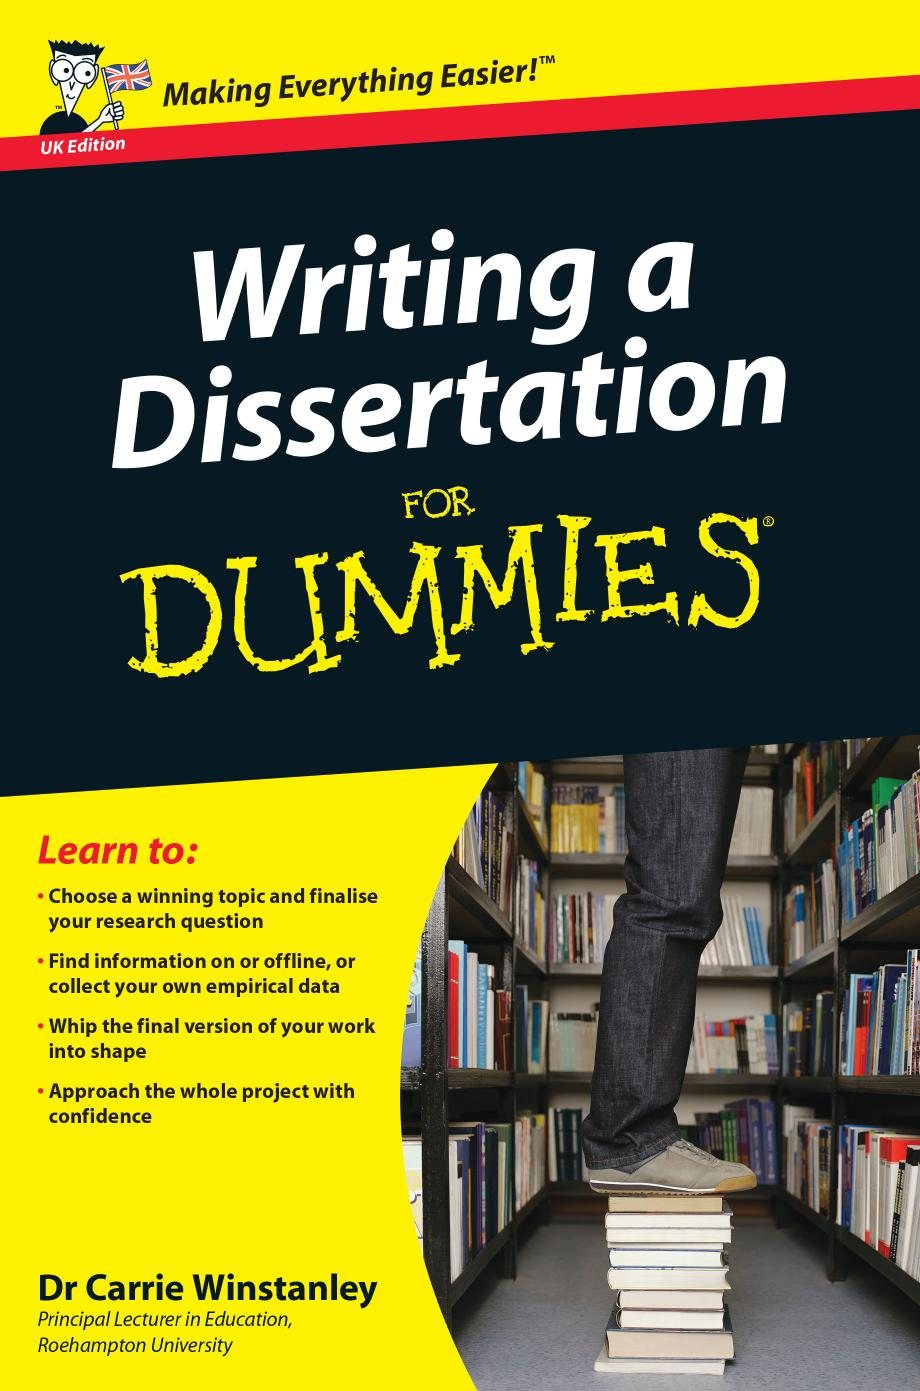 Dissertation writing grant dummies 6th edition